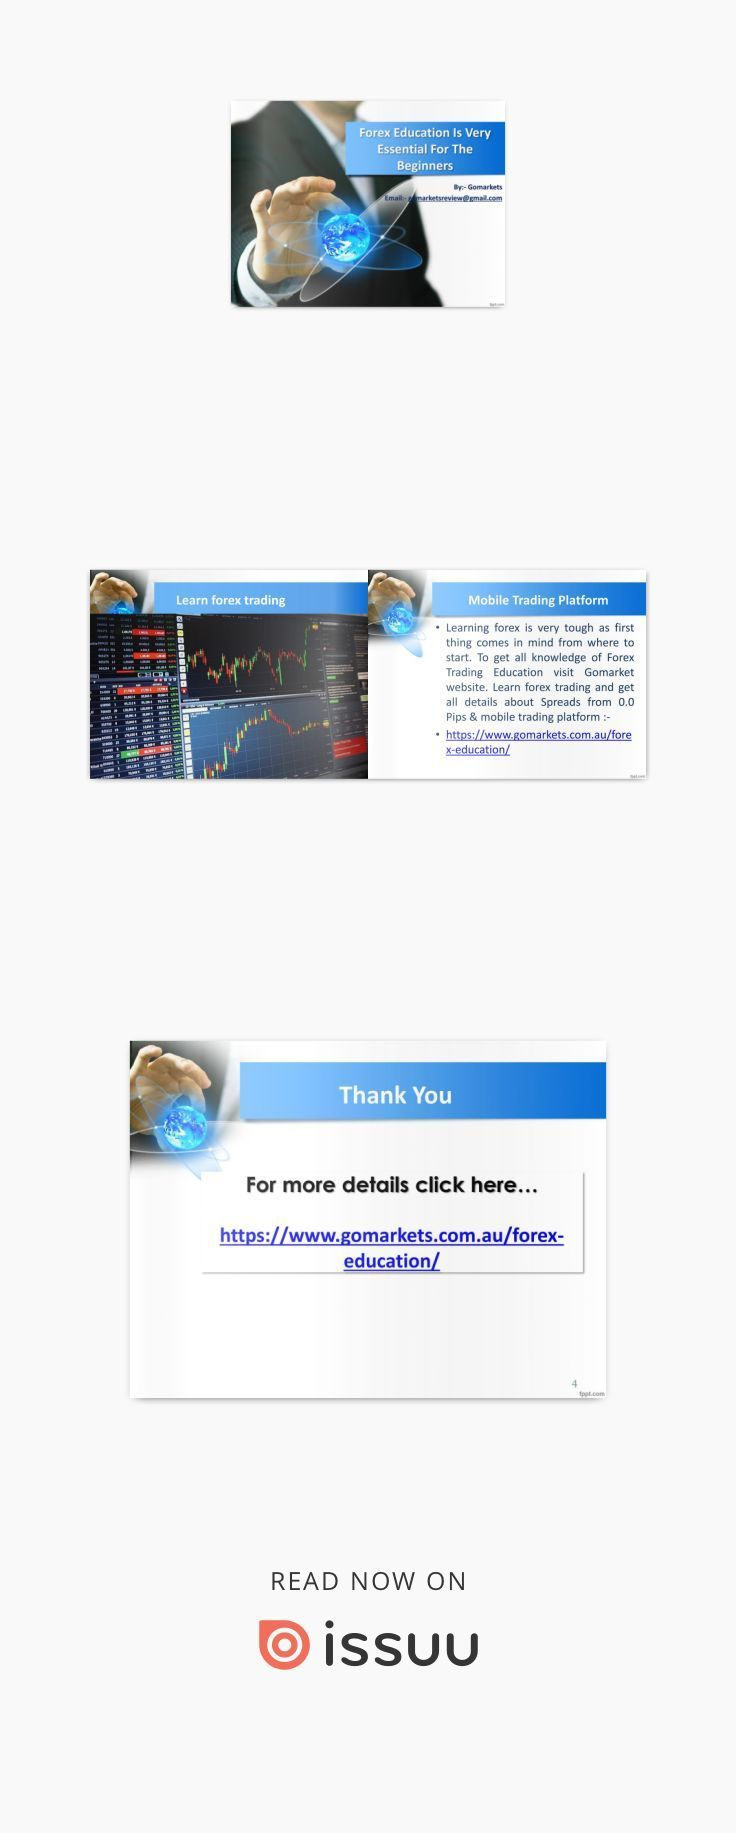 Reliable Forex Signal Service Are you struggling to Trade like a PROFESSIONALS and produce steady income Trading Forex, Join our FREE telegram for more #forexlife #forexlifestyle #wallstreet #enterpreneur #USDCHF #gold #forexmoney